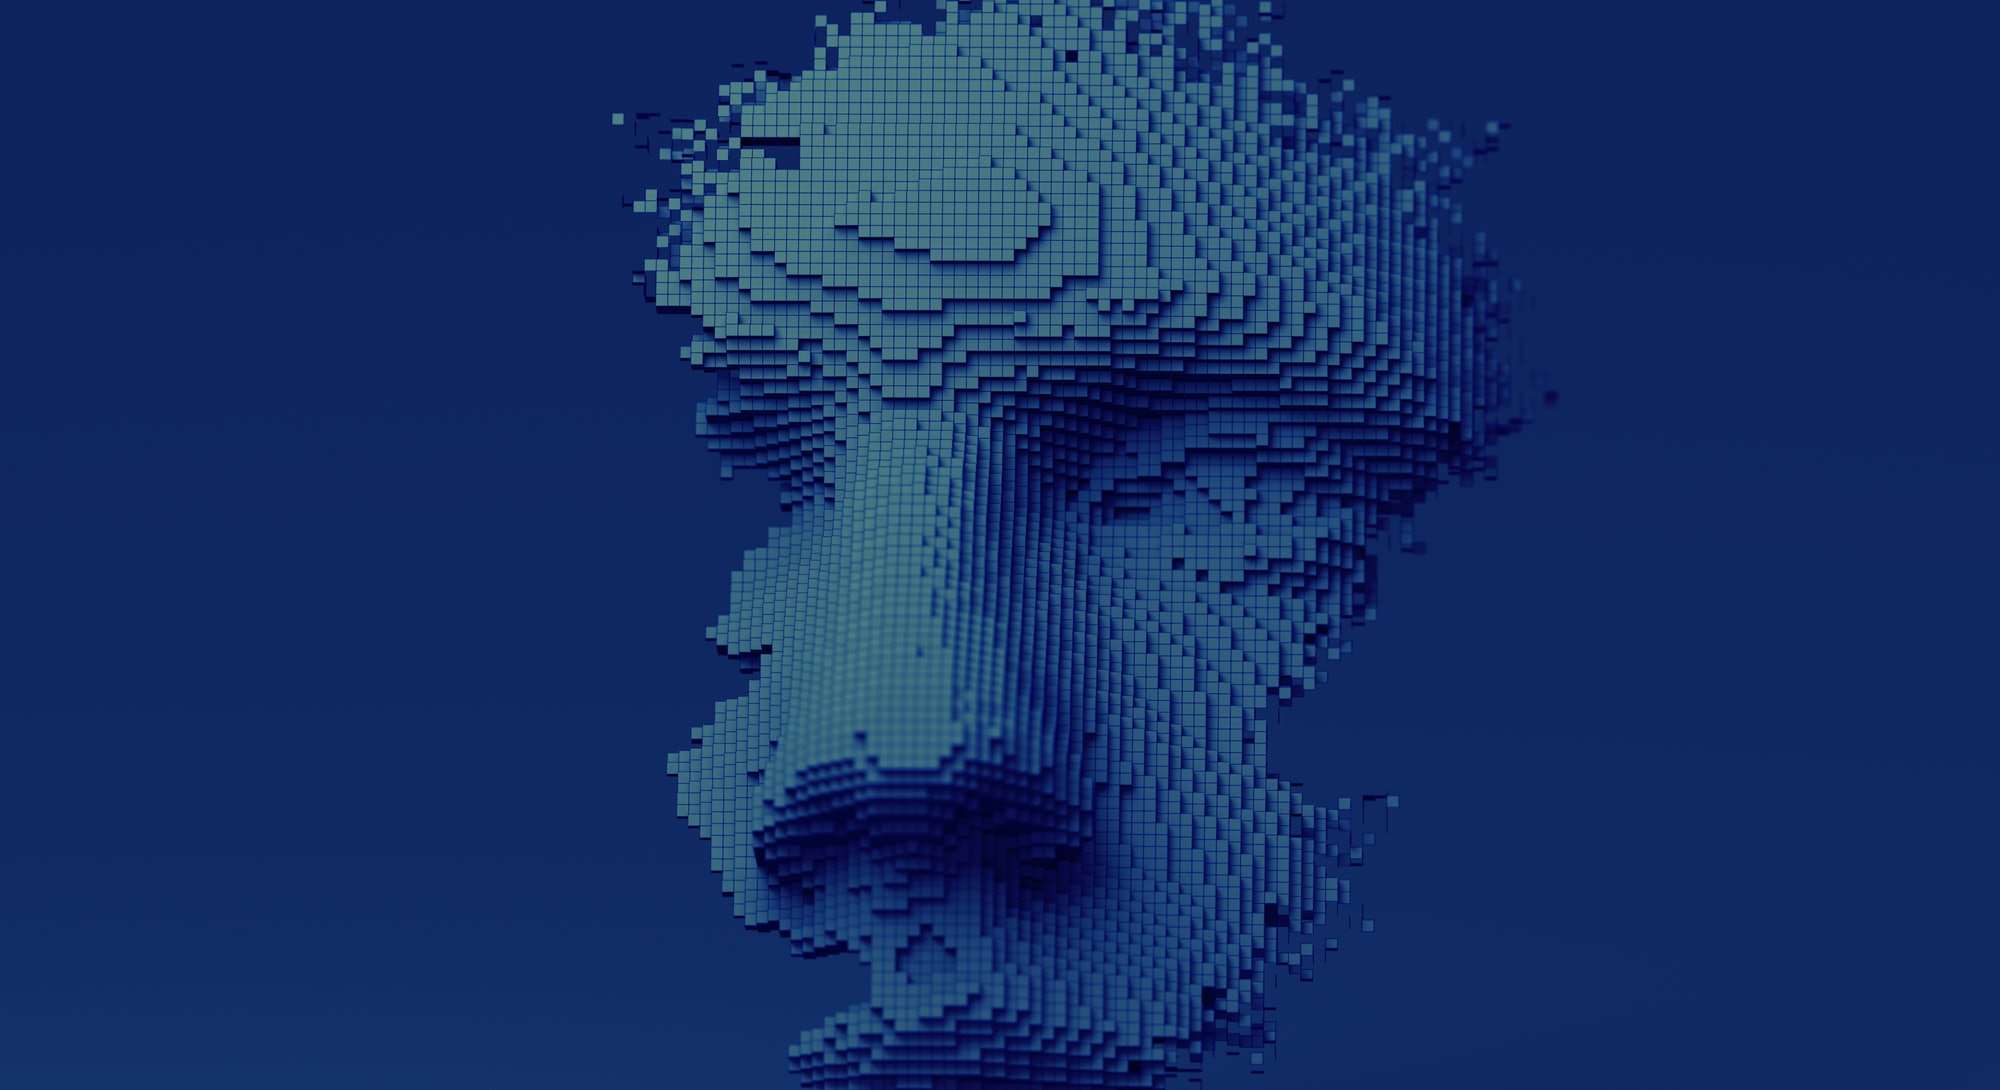 Abstract human face, 3d illustration, head constructed of cubes, artificial intelligence concept